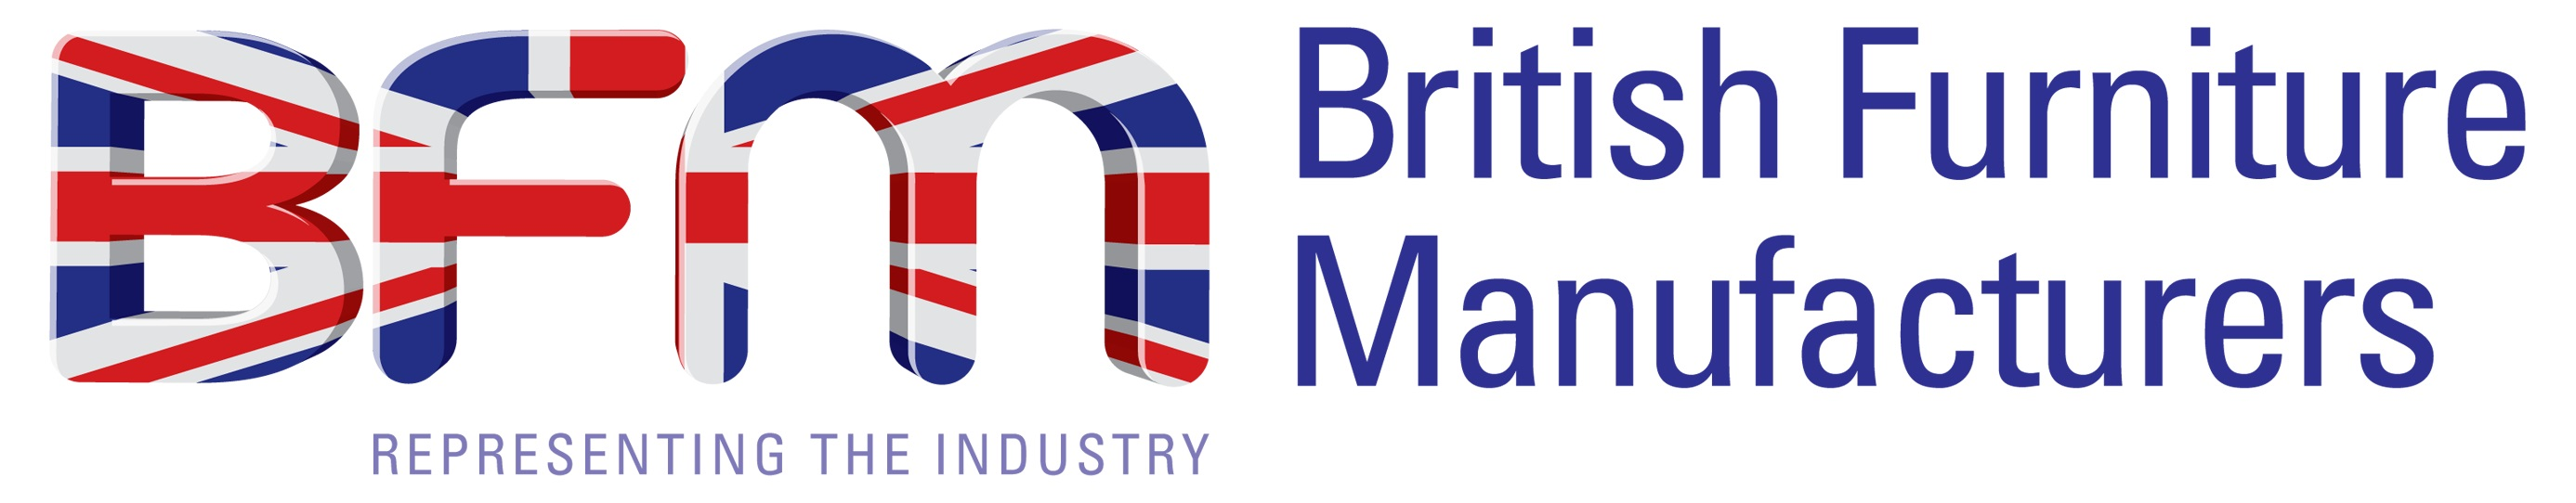 British Furniture Manufacturers2